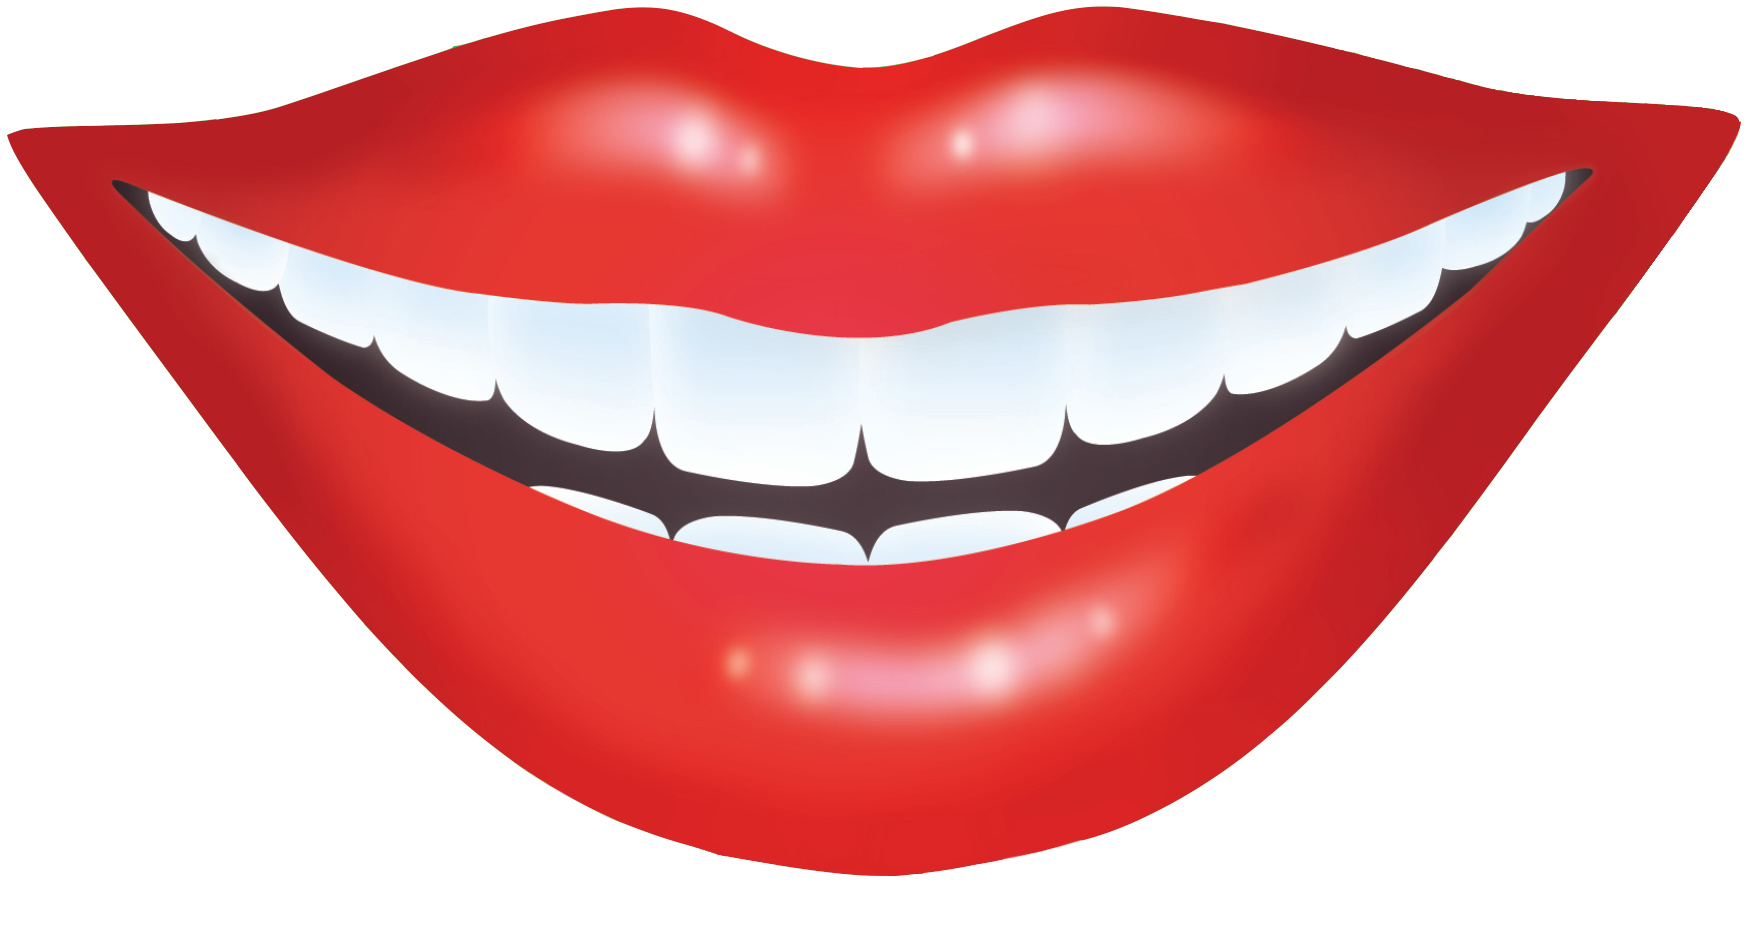 Frown Lips Clipart Free Clipart Images-Frown Lips Clipart Free Clipart Images-1